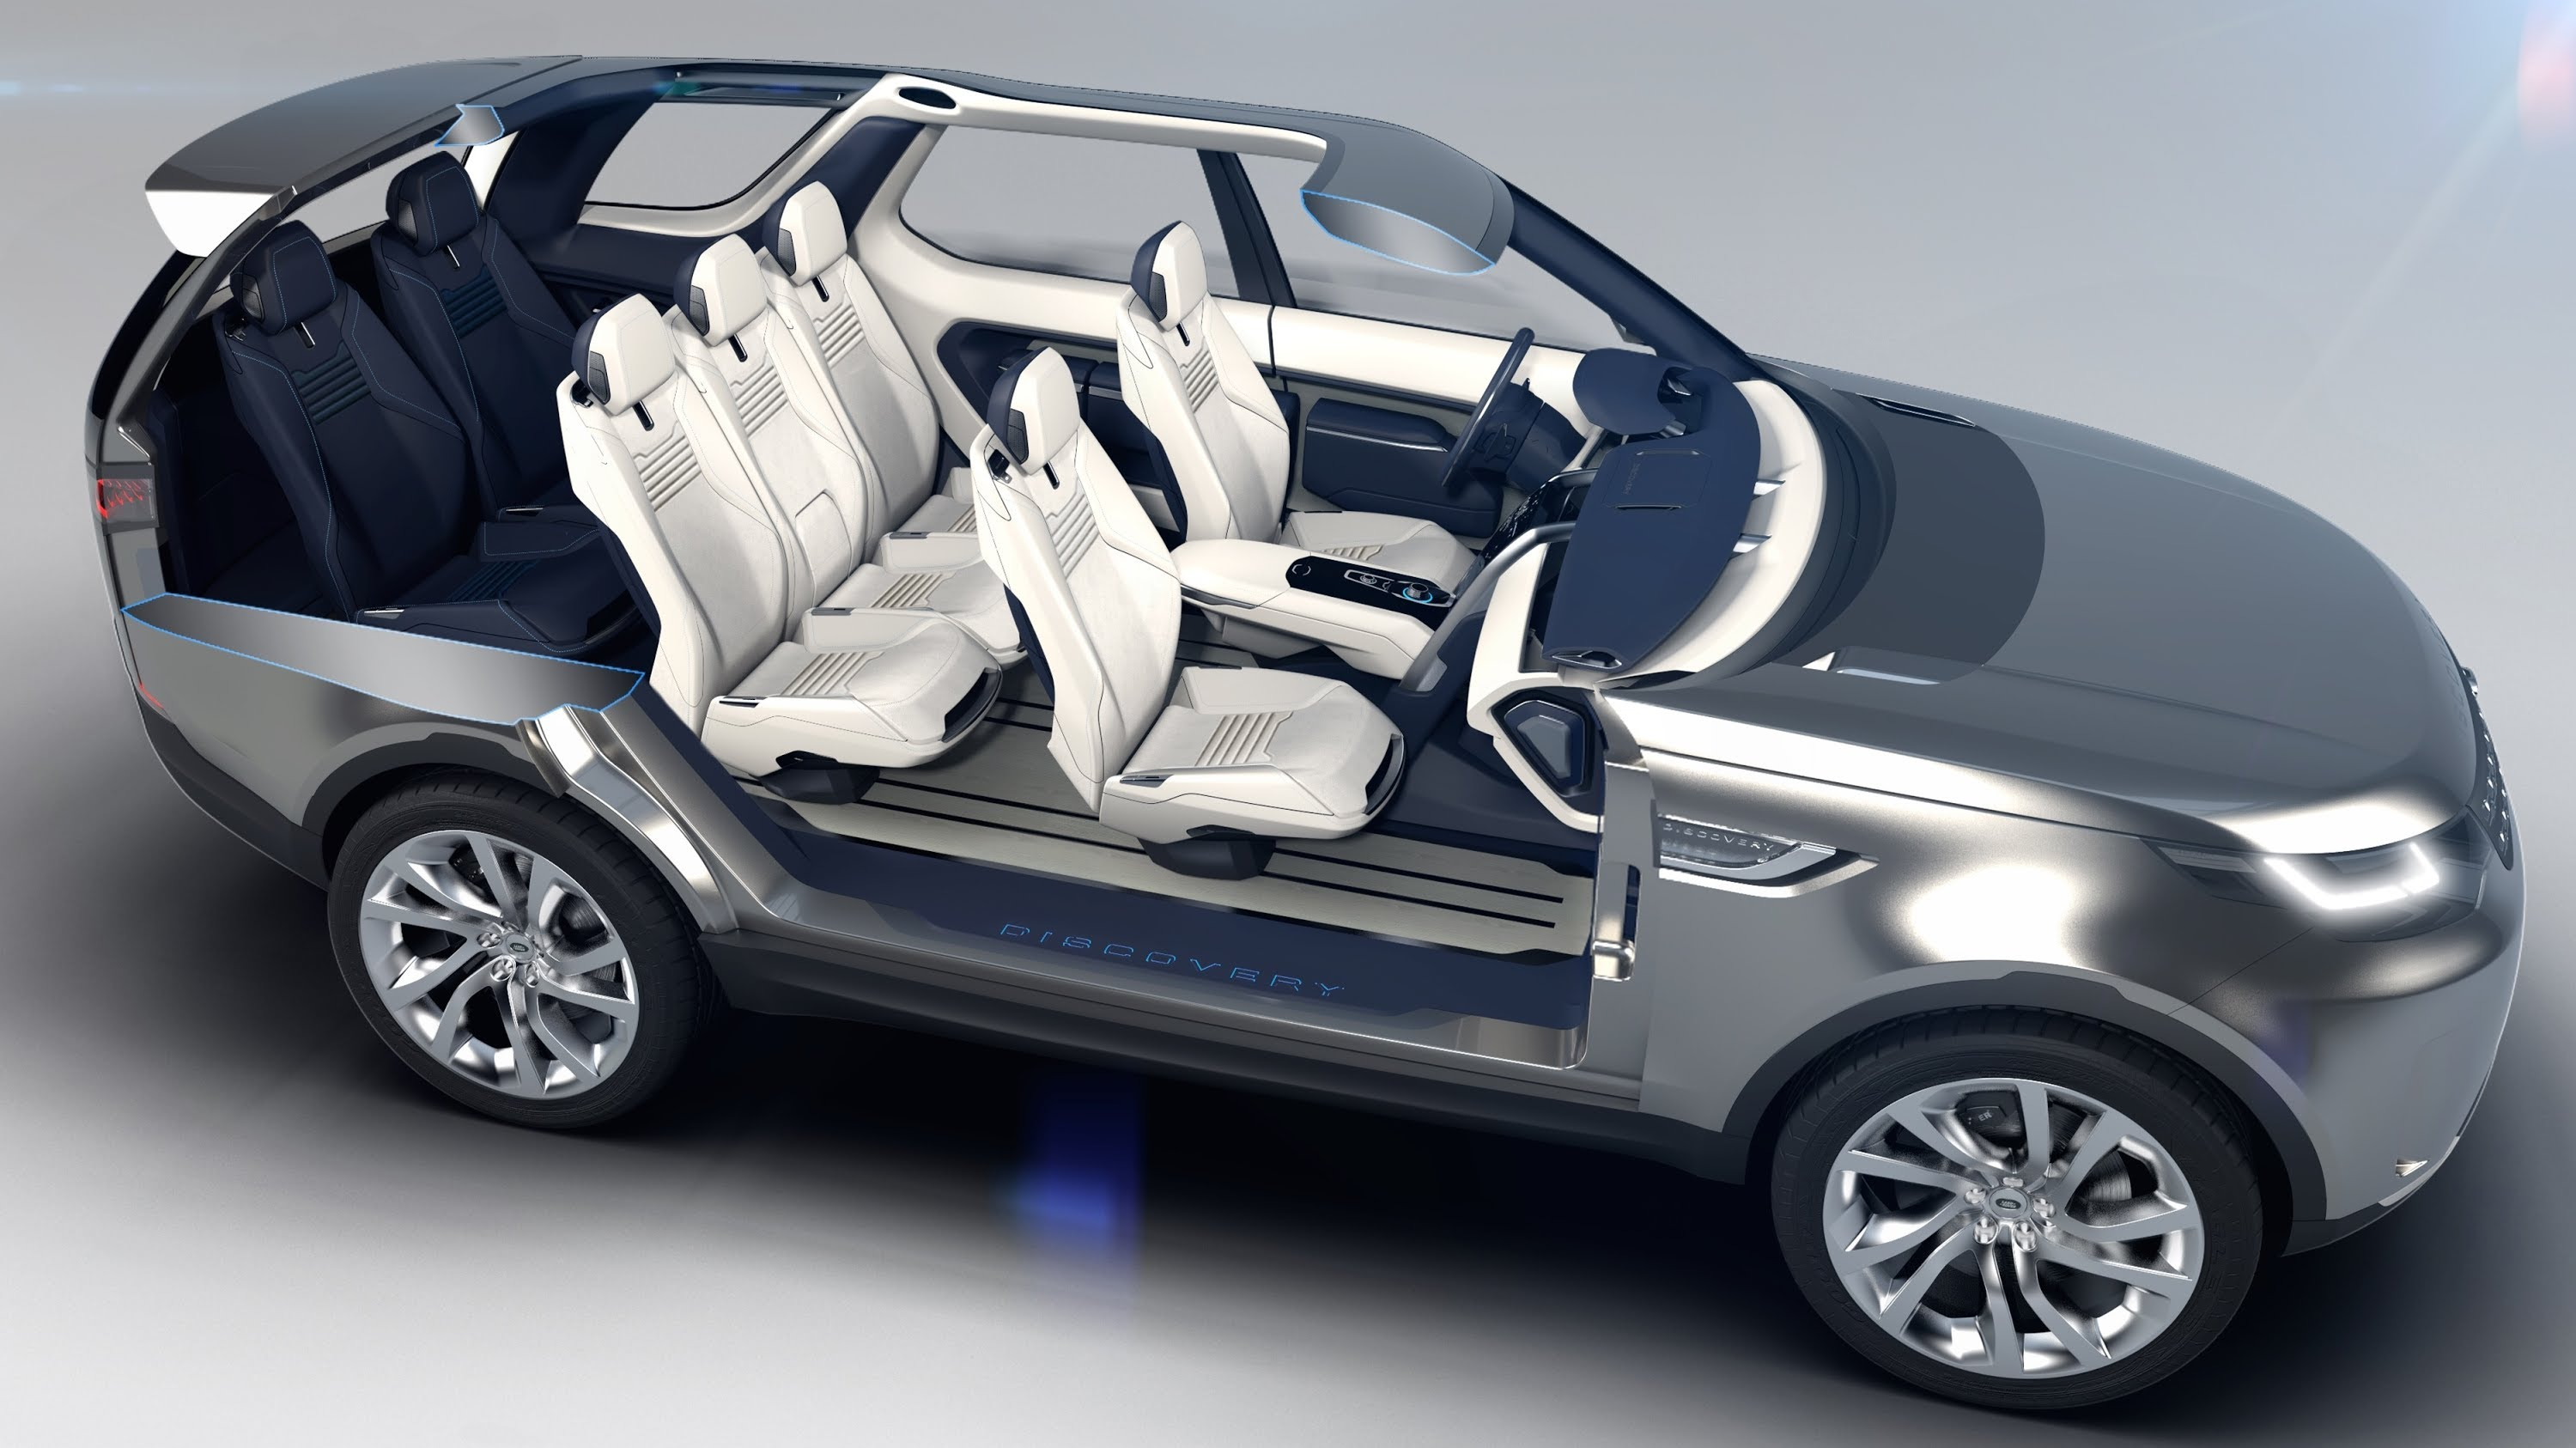 2017 Land Rover Discovery Vision Concept Photo 4